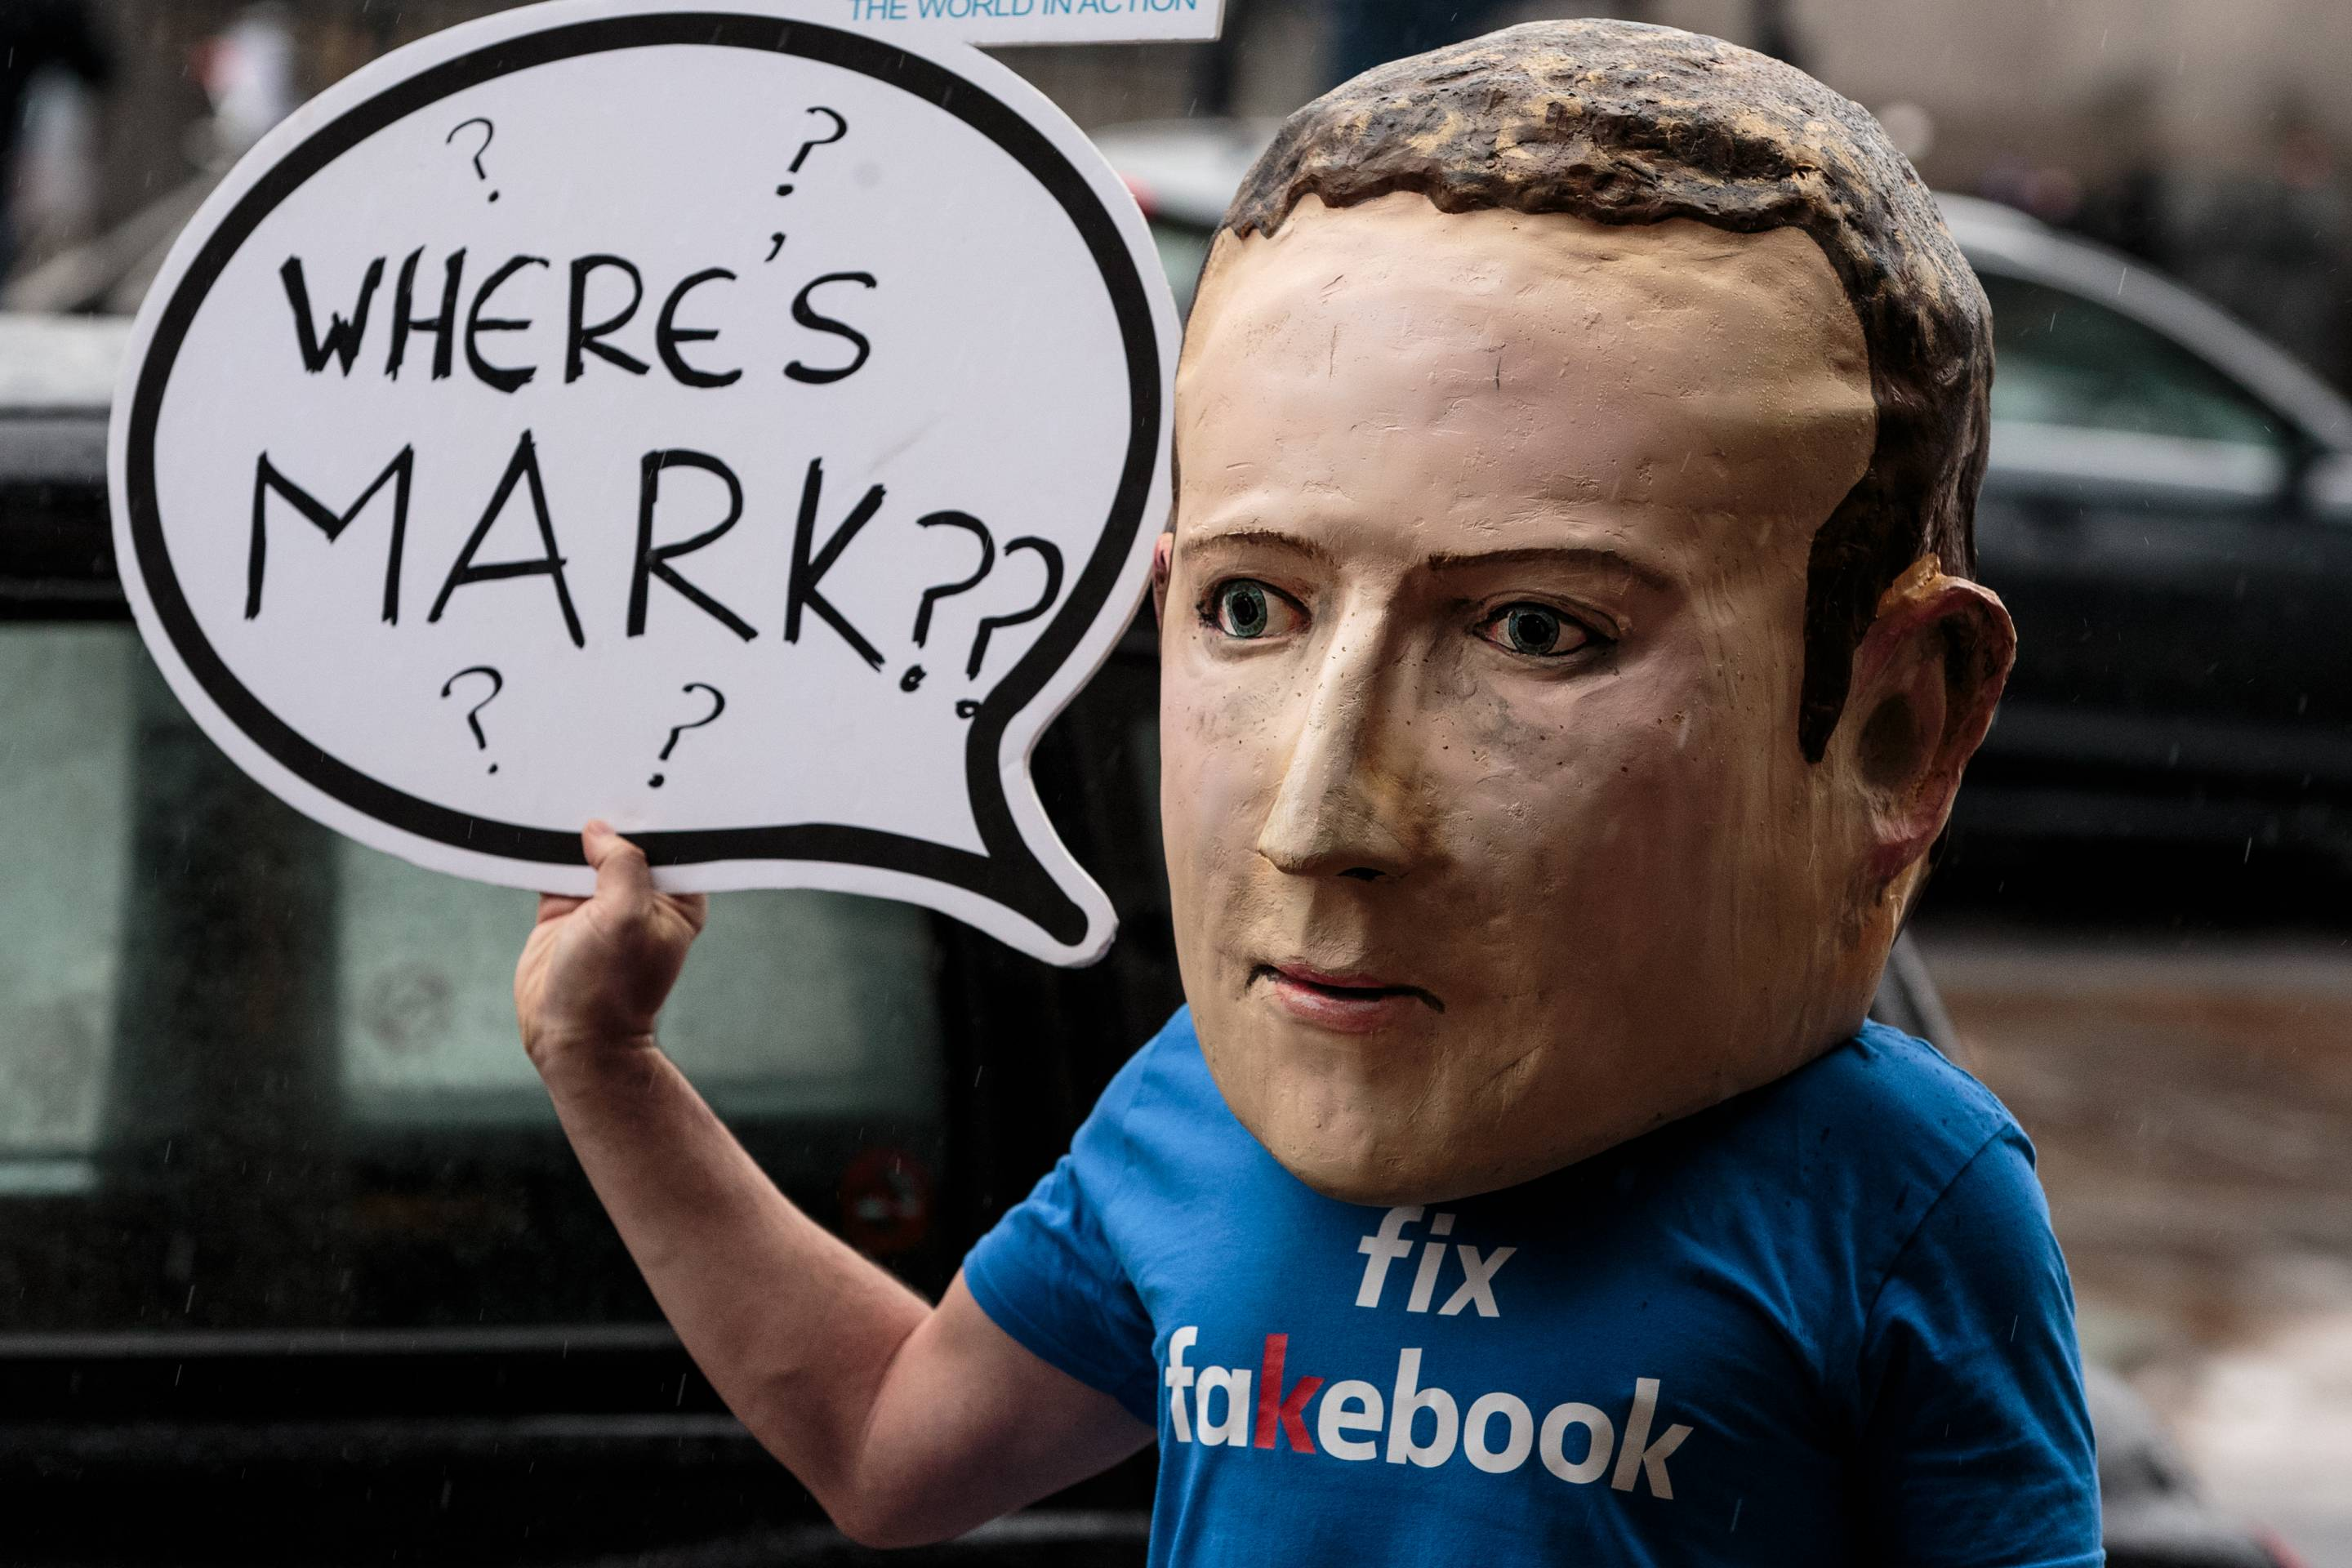 A protester wearing a model head of Facebook CEO Mark Zuckerberg poses for media on Nov. 27, 2018 in London.